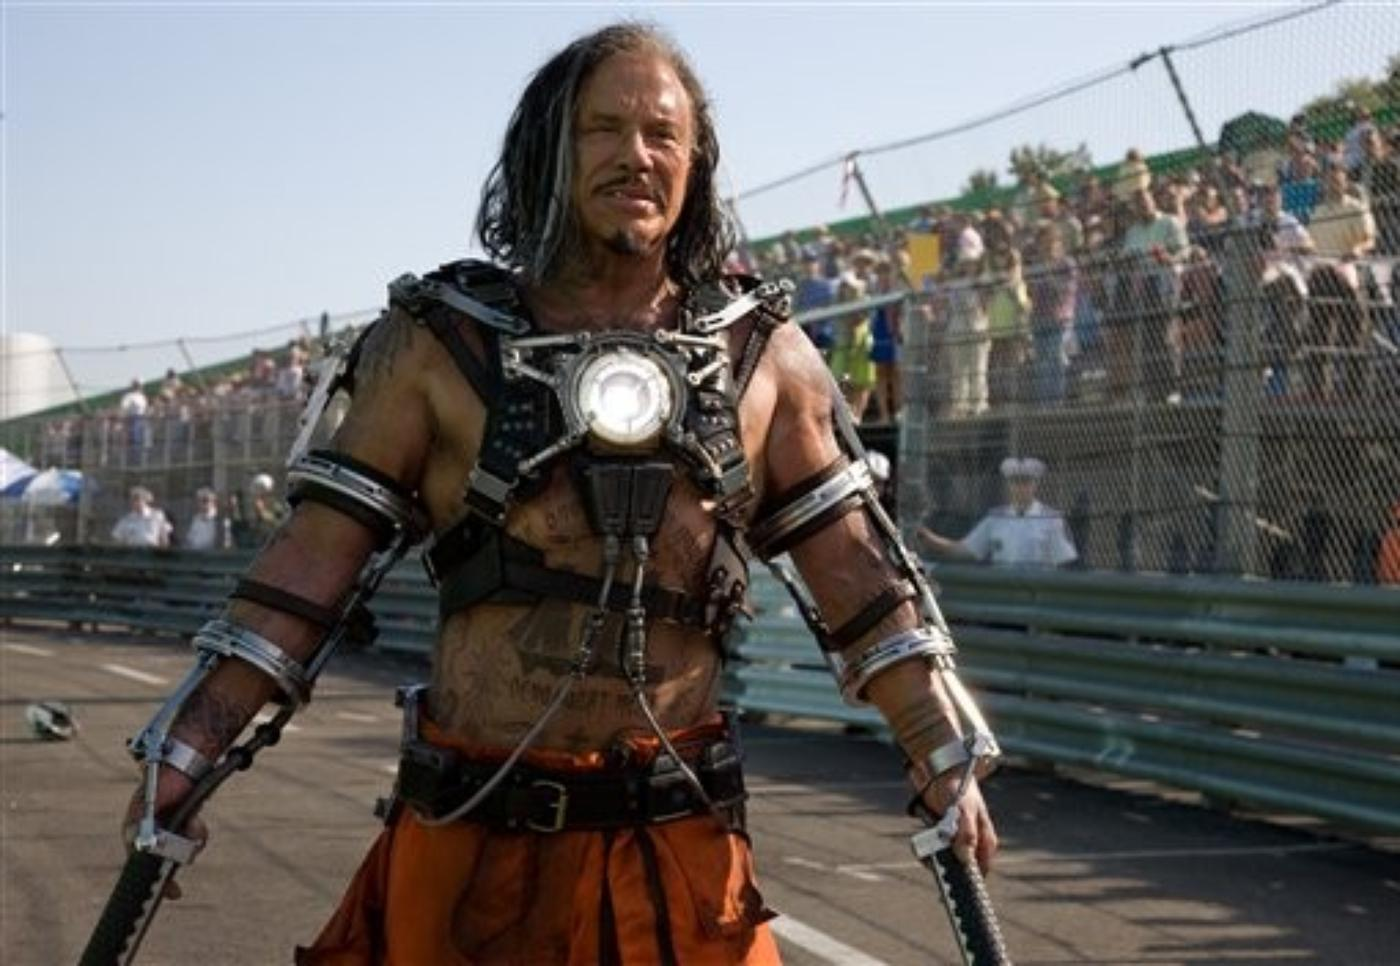 10 of the most disappointing superhero movie characters